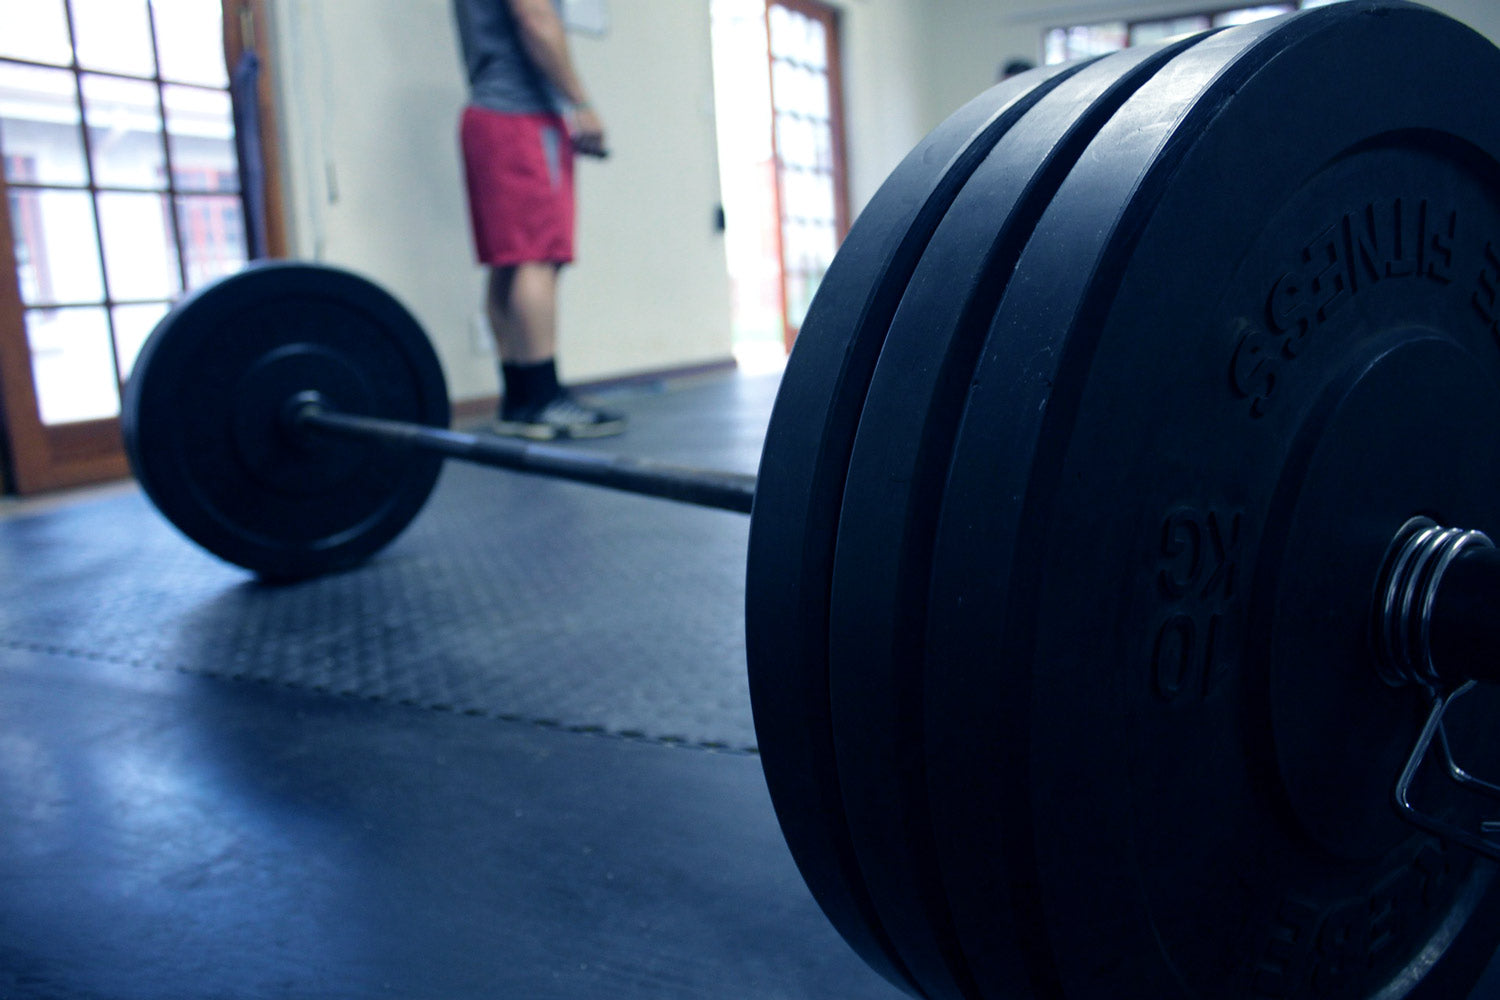 10 Things You Need for the Perfect Home Gym - Barbell | Barbell Weights